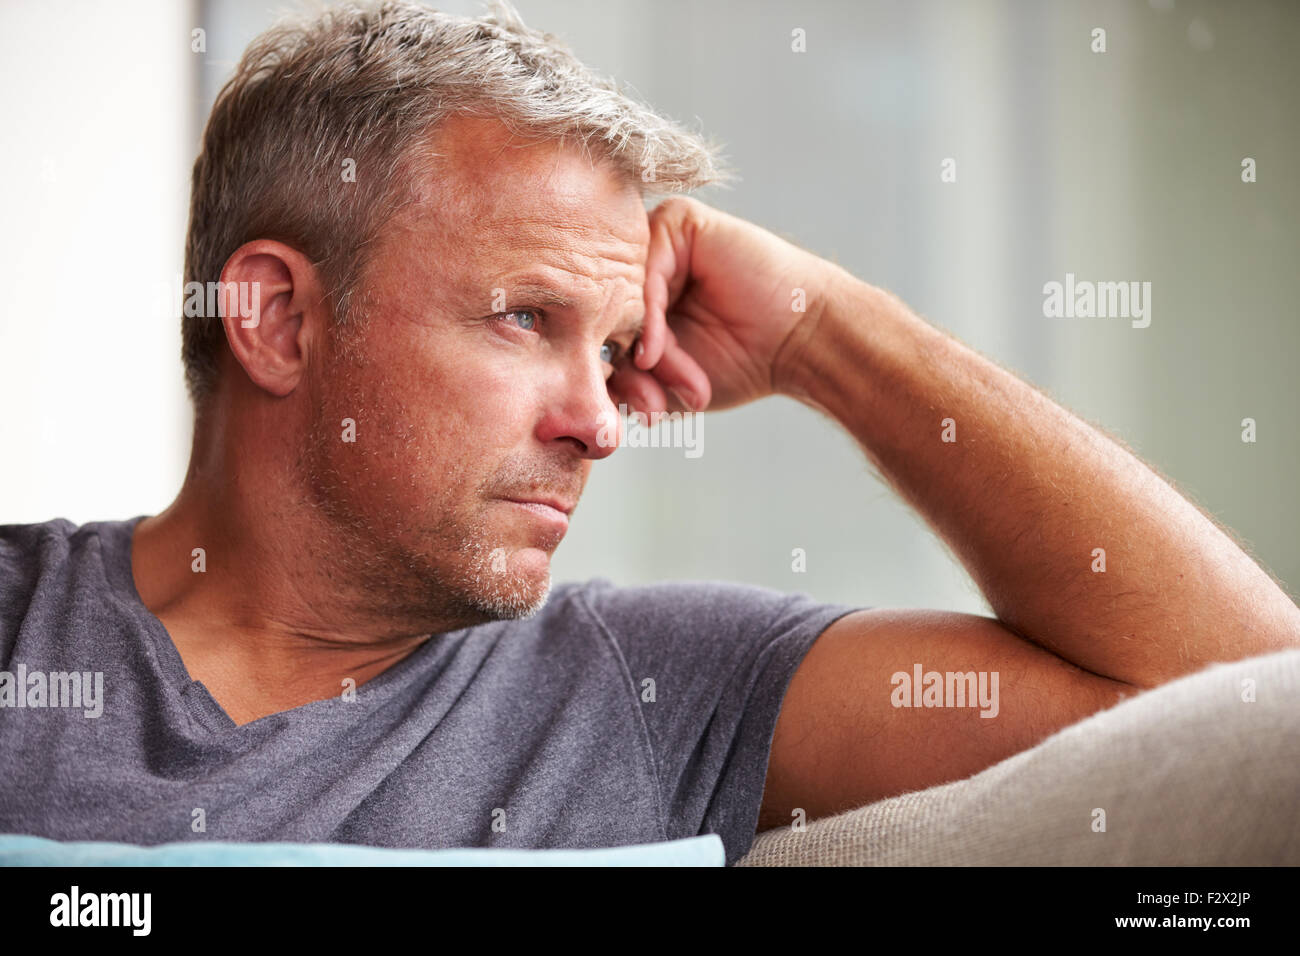 Mature Man Suffering From Depression At Home - Stock Image